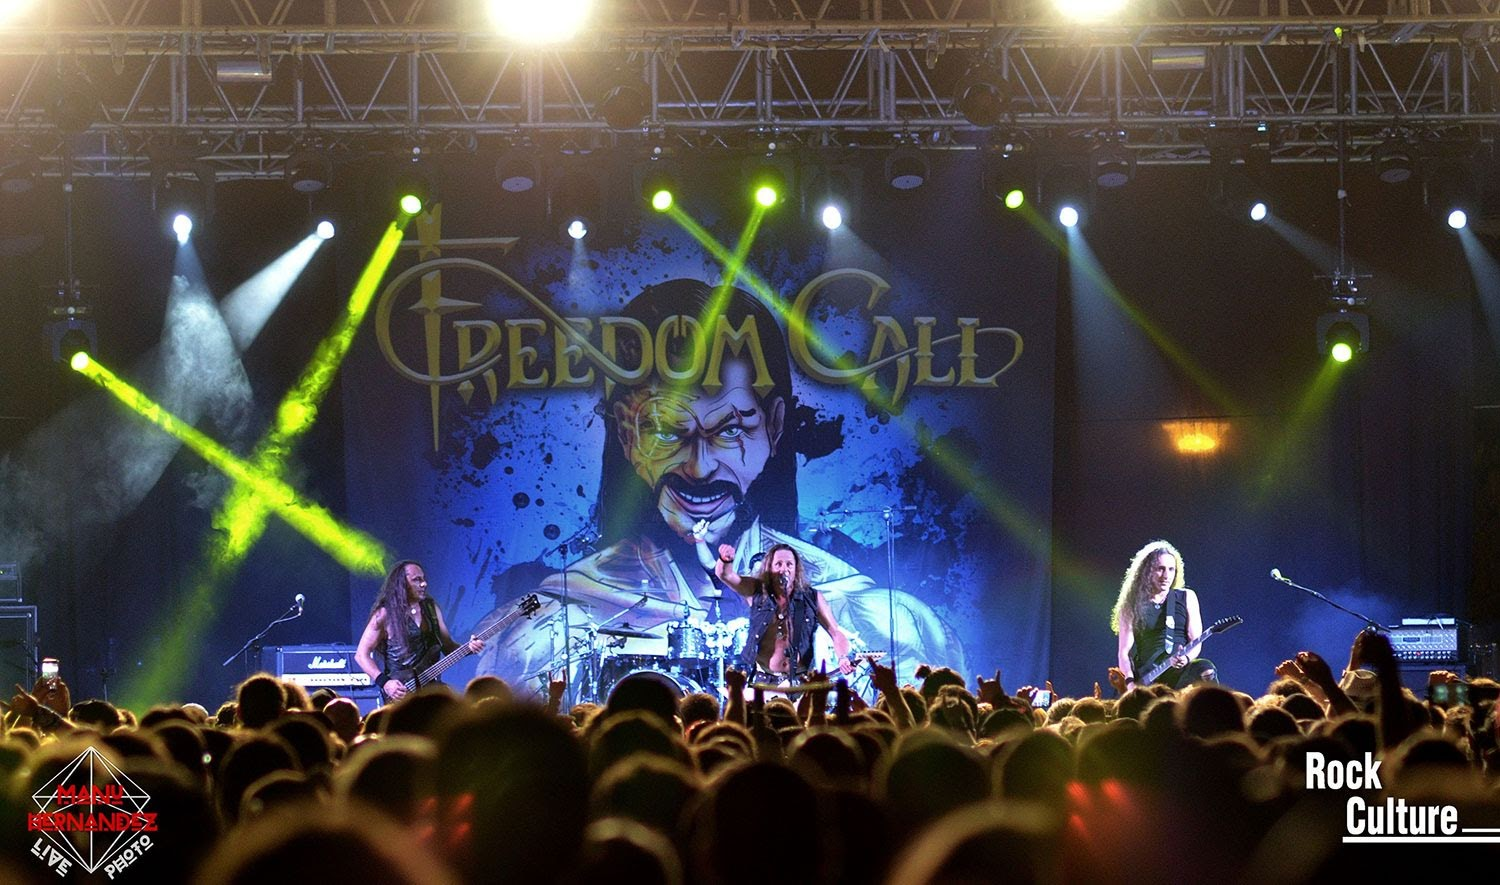 freedom call leyendas del rock